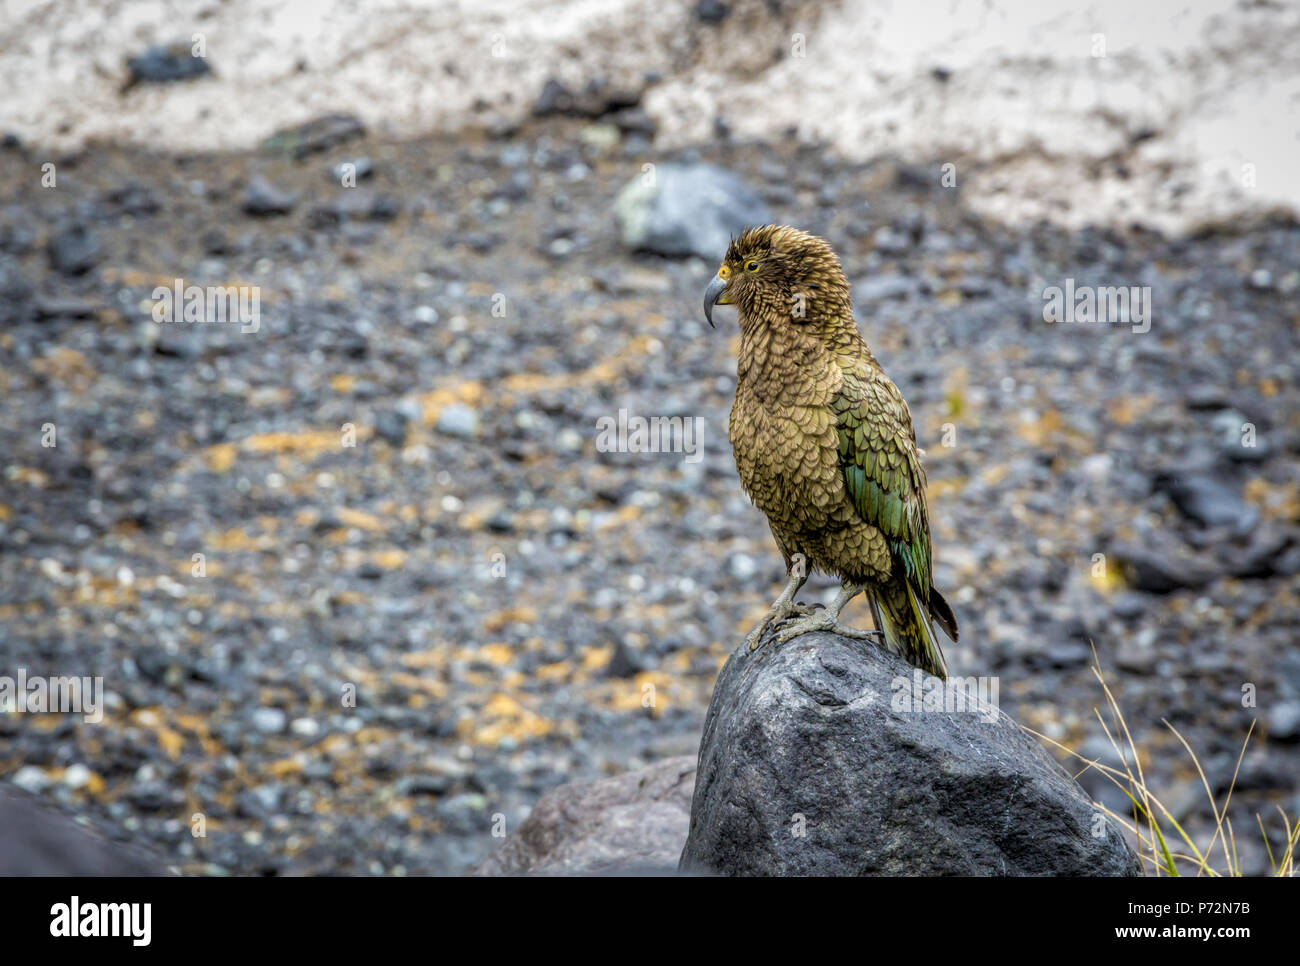 Kea Parrot perched on a rocket a snowy valley in the fiordland National Park on the southern island of New Zealand. - Stock Image